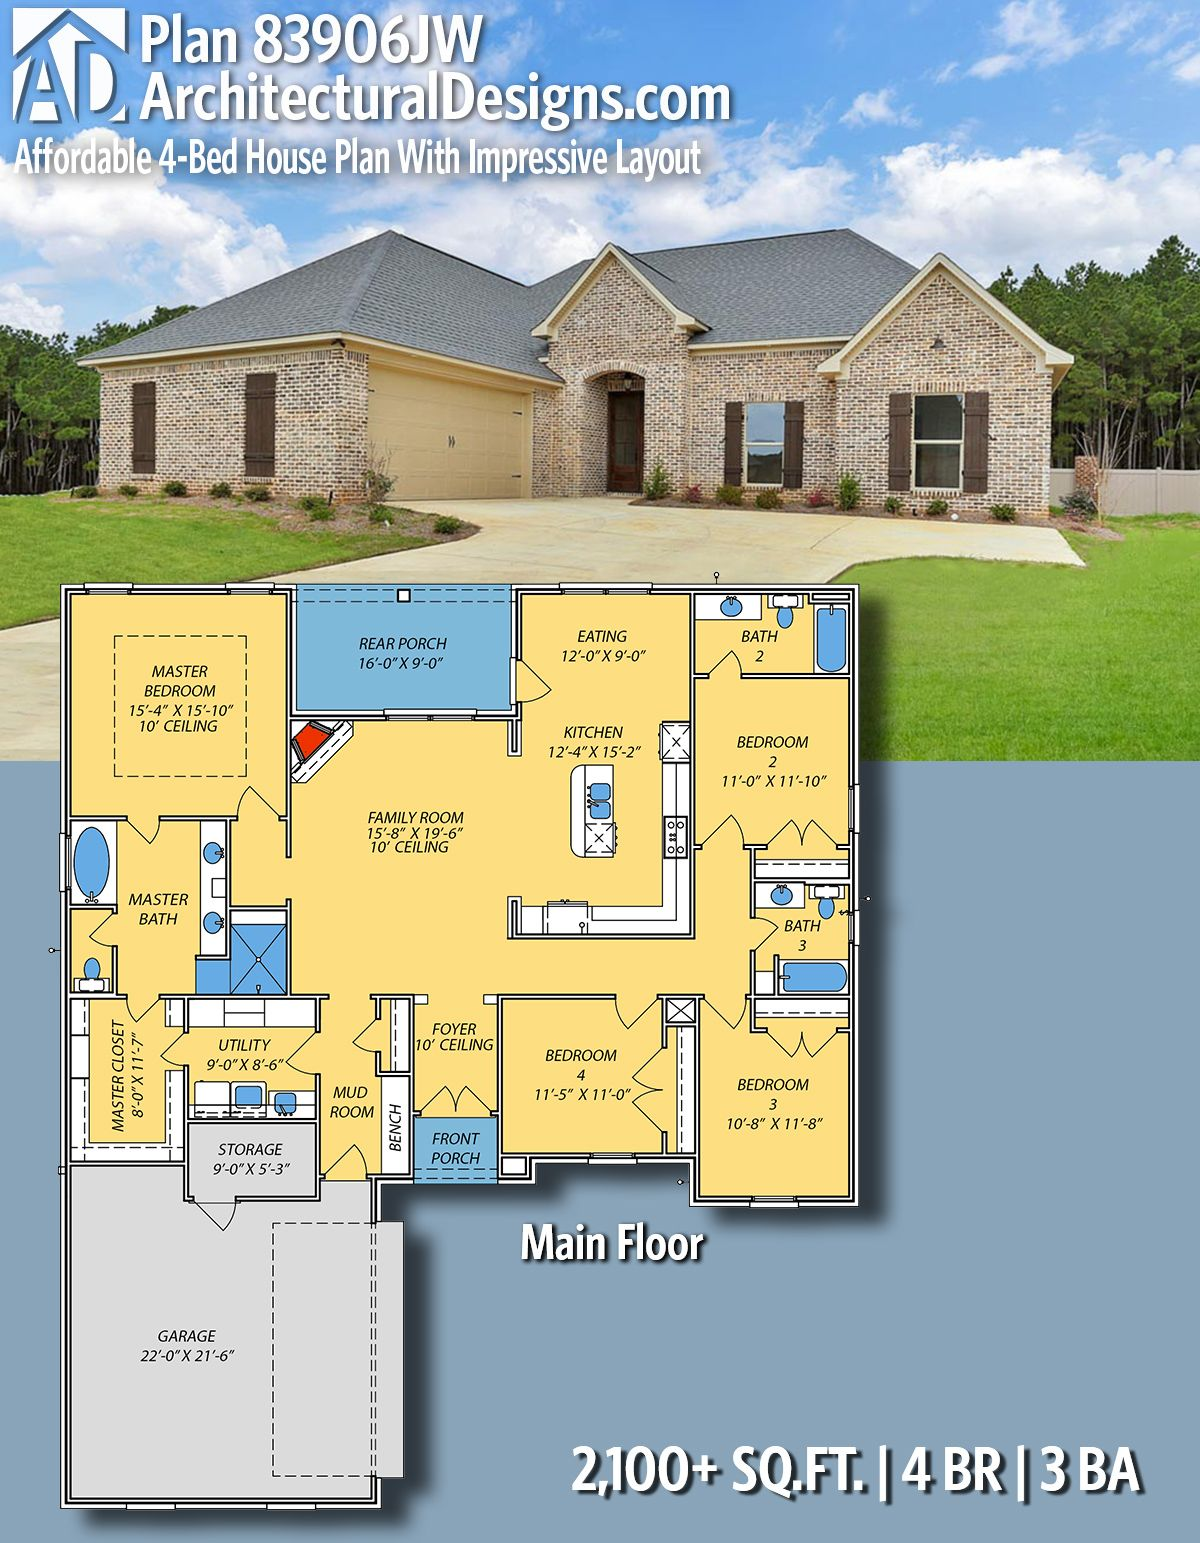 Plan 83906jw Affordable 4 Bed House Plan With Impressive Layout Architectural Design House Plans House Plans House Design